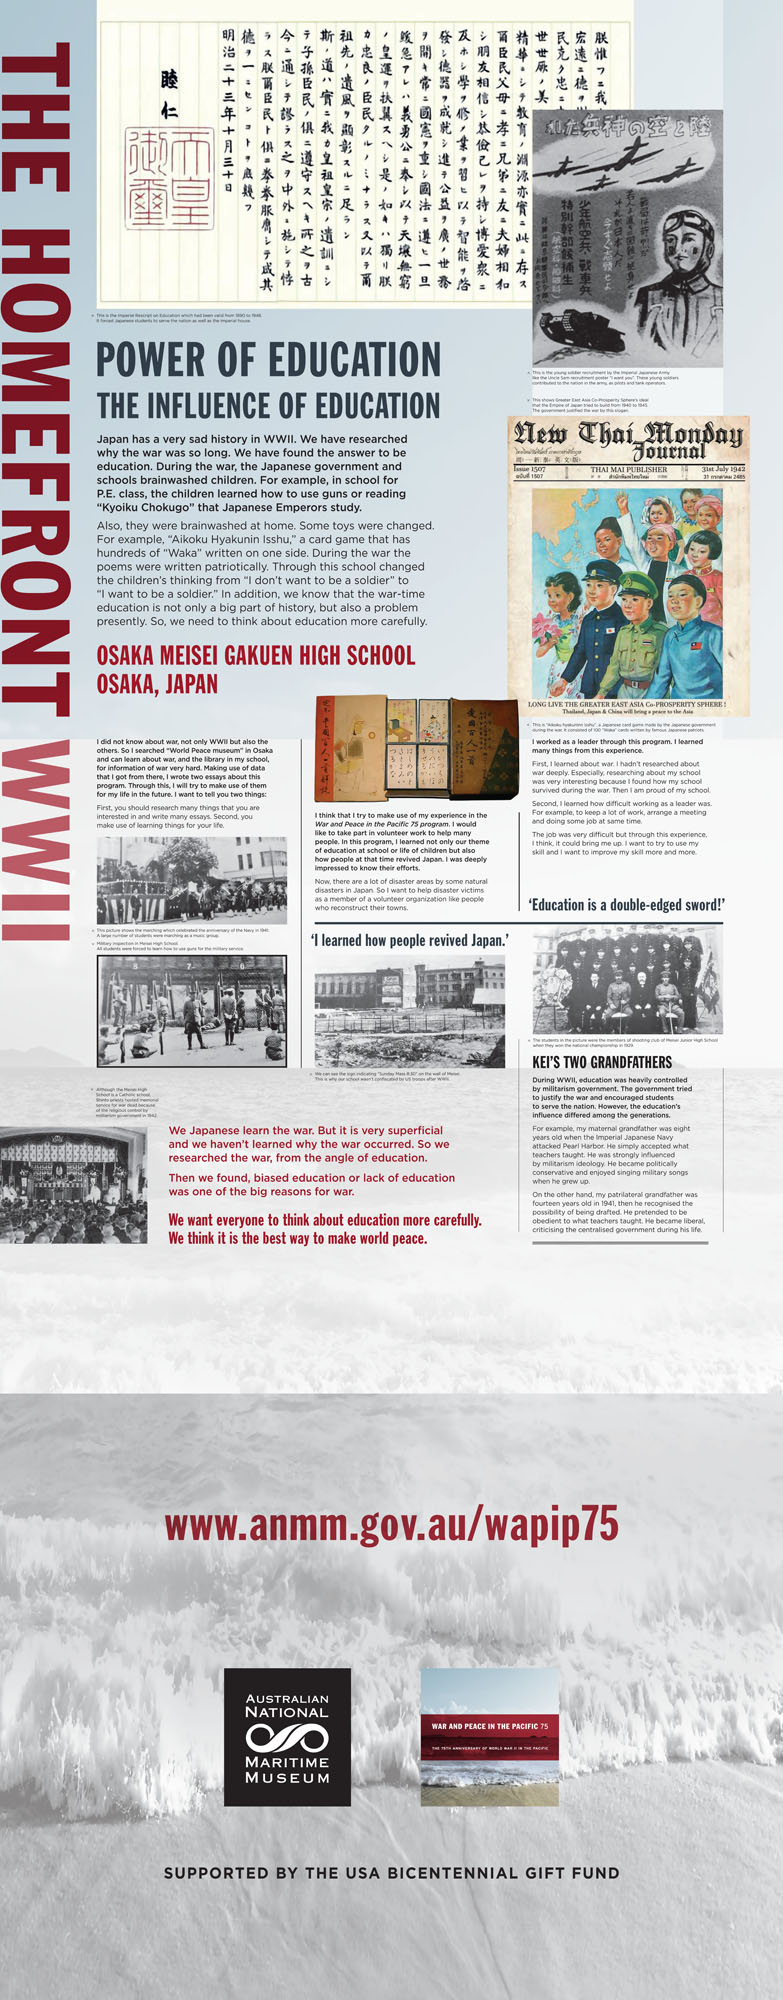 In 2018 classes investigated the homefront, examining how civilians lived in a world at war and contributed to the war effort. Each school's research was compiled to form a banner exhibition that will be shown at the museum then travel in Australia and to the USA and Japan.